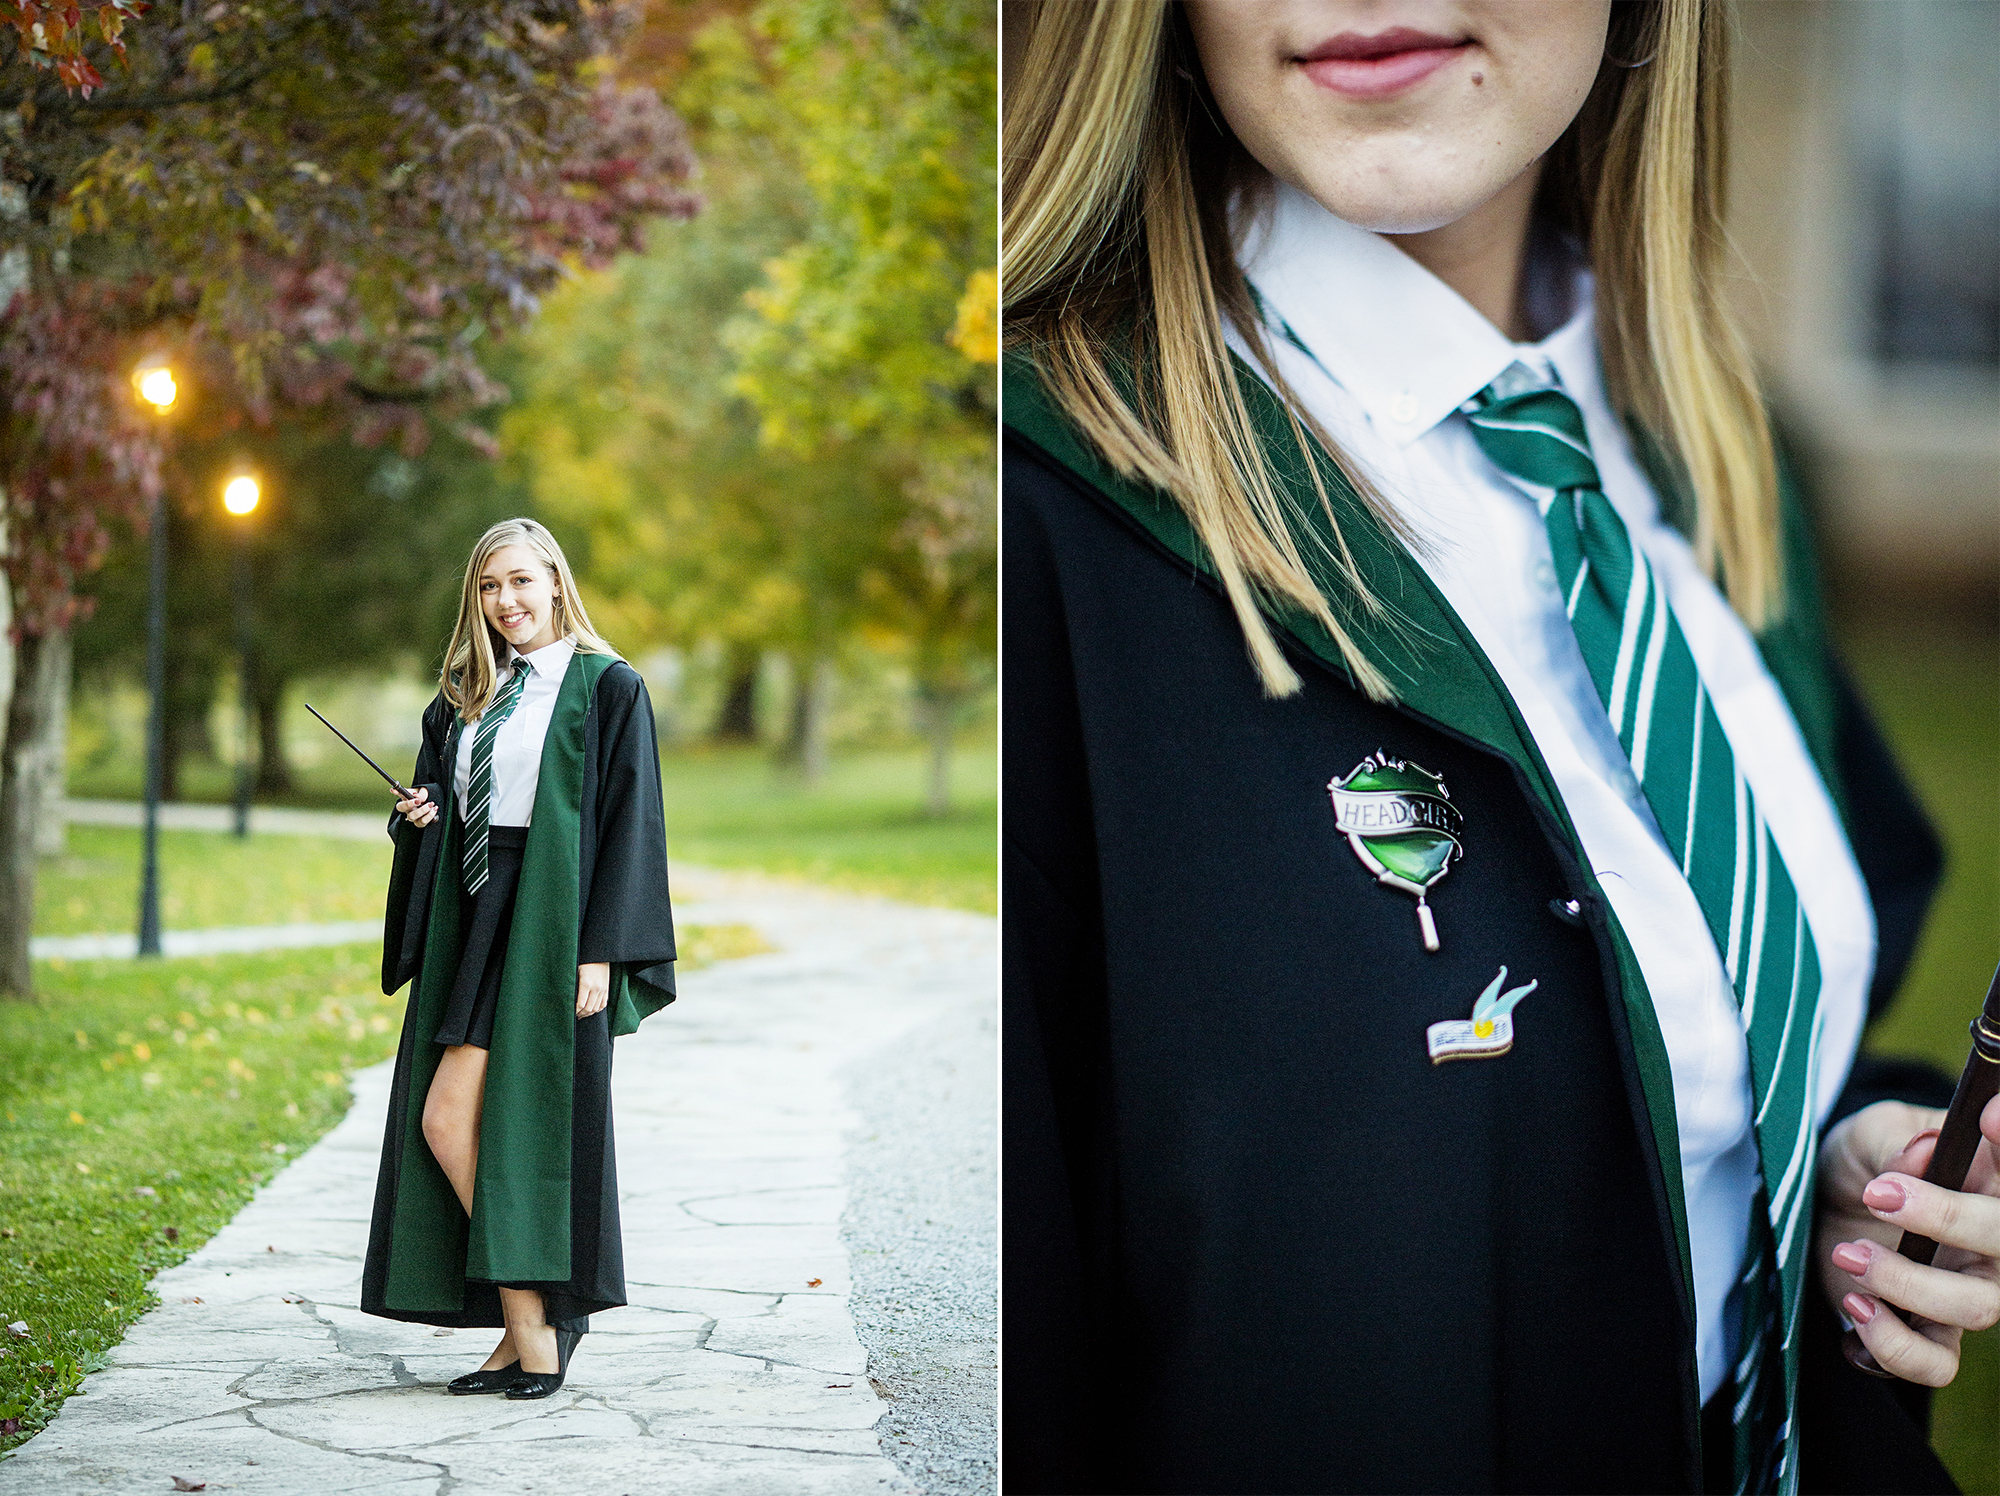 Seriously_Sabrina_Photography_Lexington_Kentucky_High_School_Senior_Camryn_McManis_28.jpg